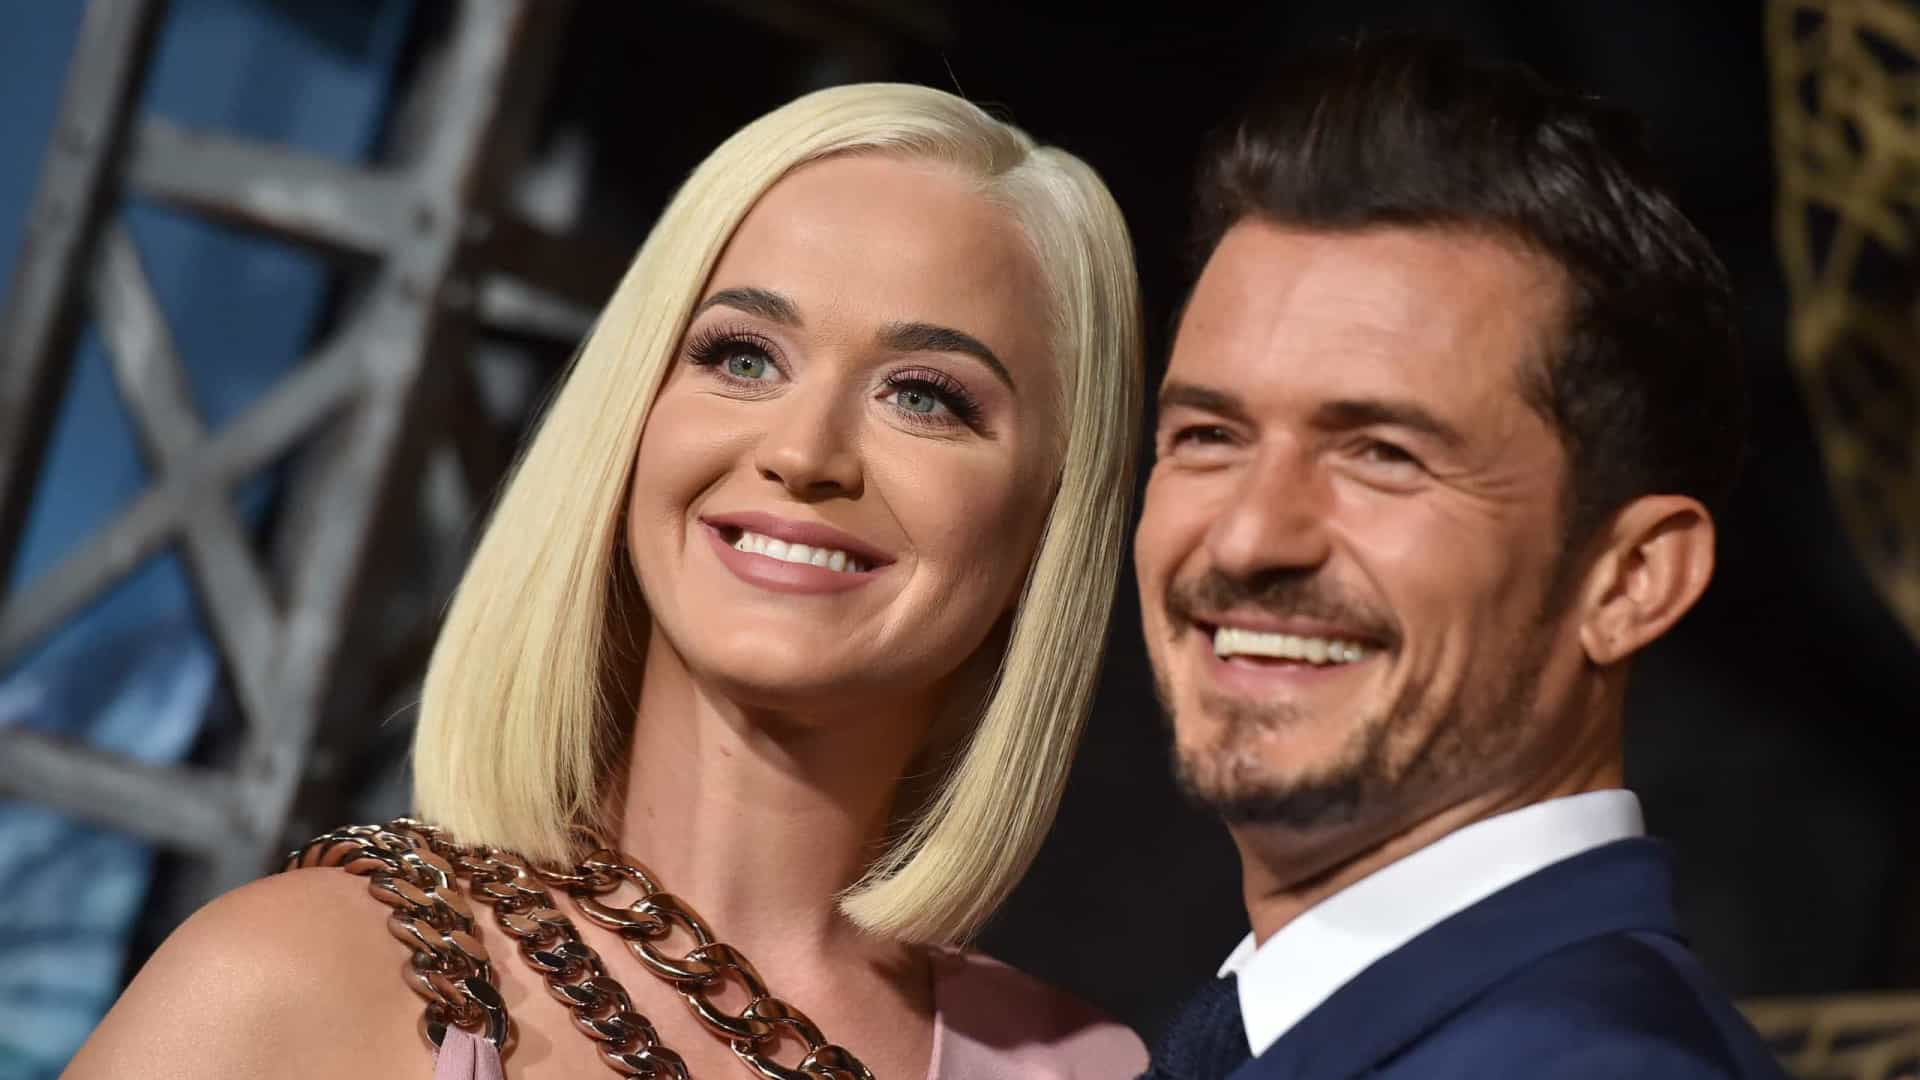 Katy Perry e Orlando Bloom revelam o sexo do bebê